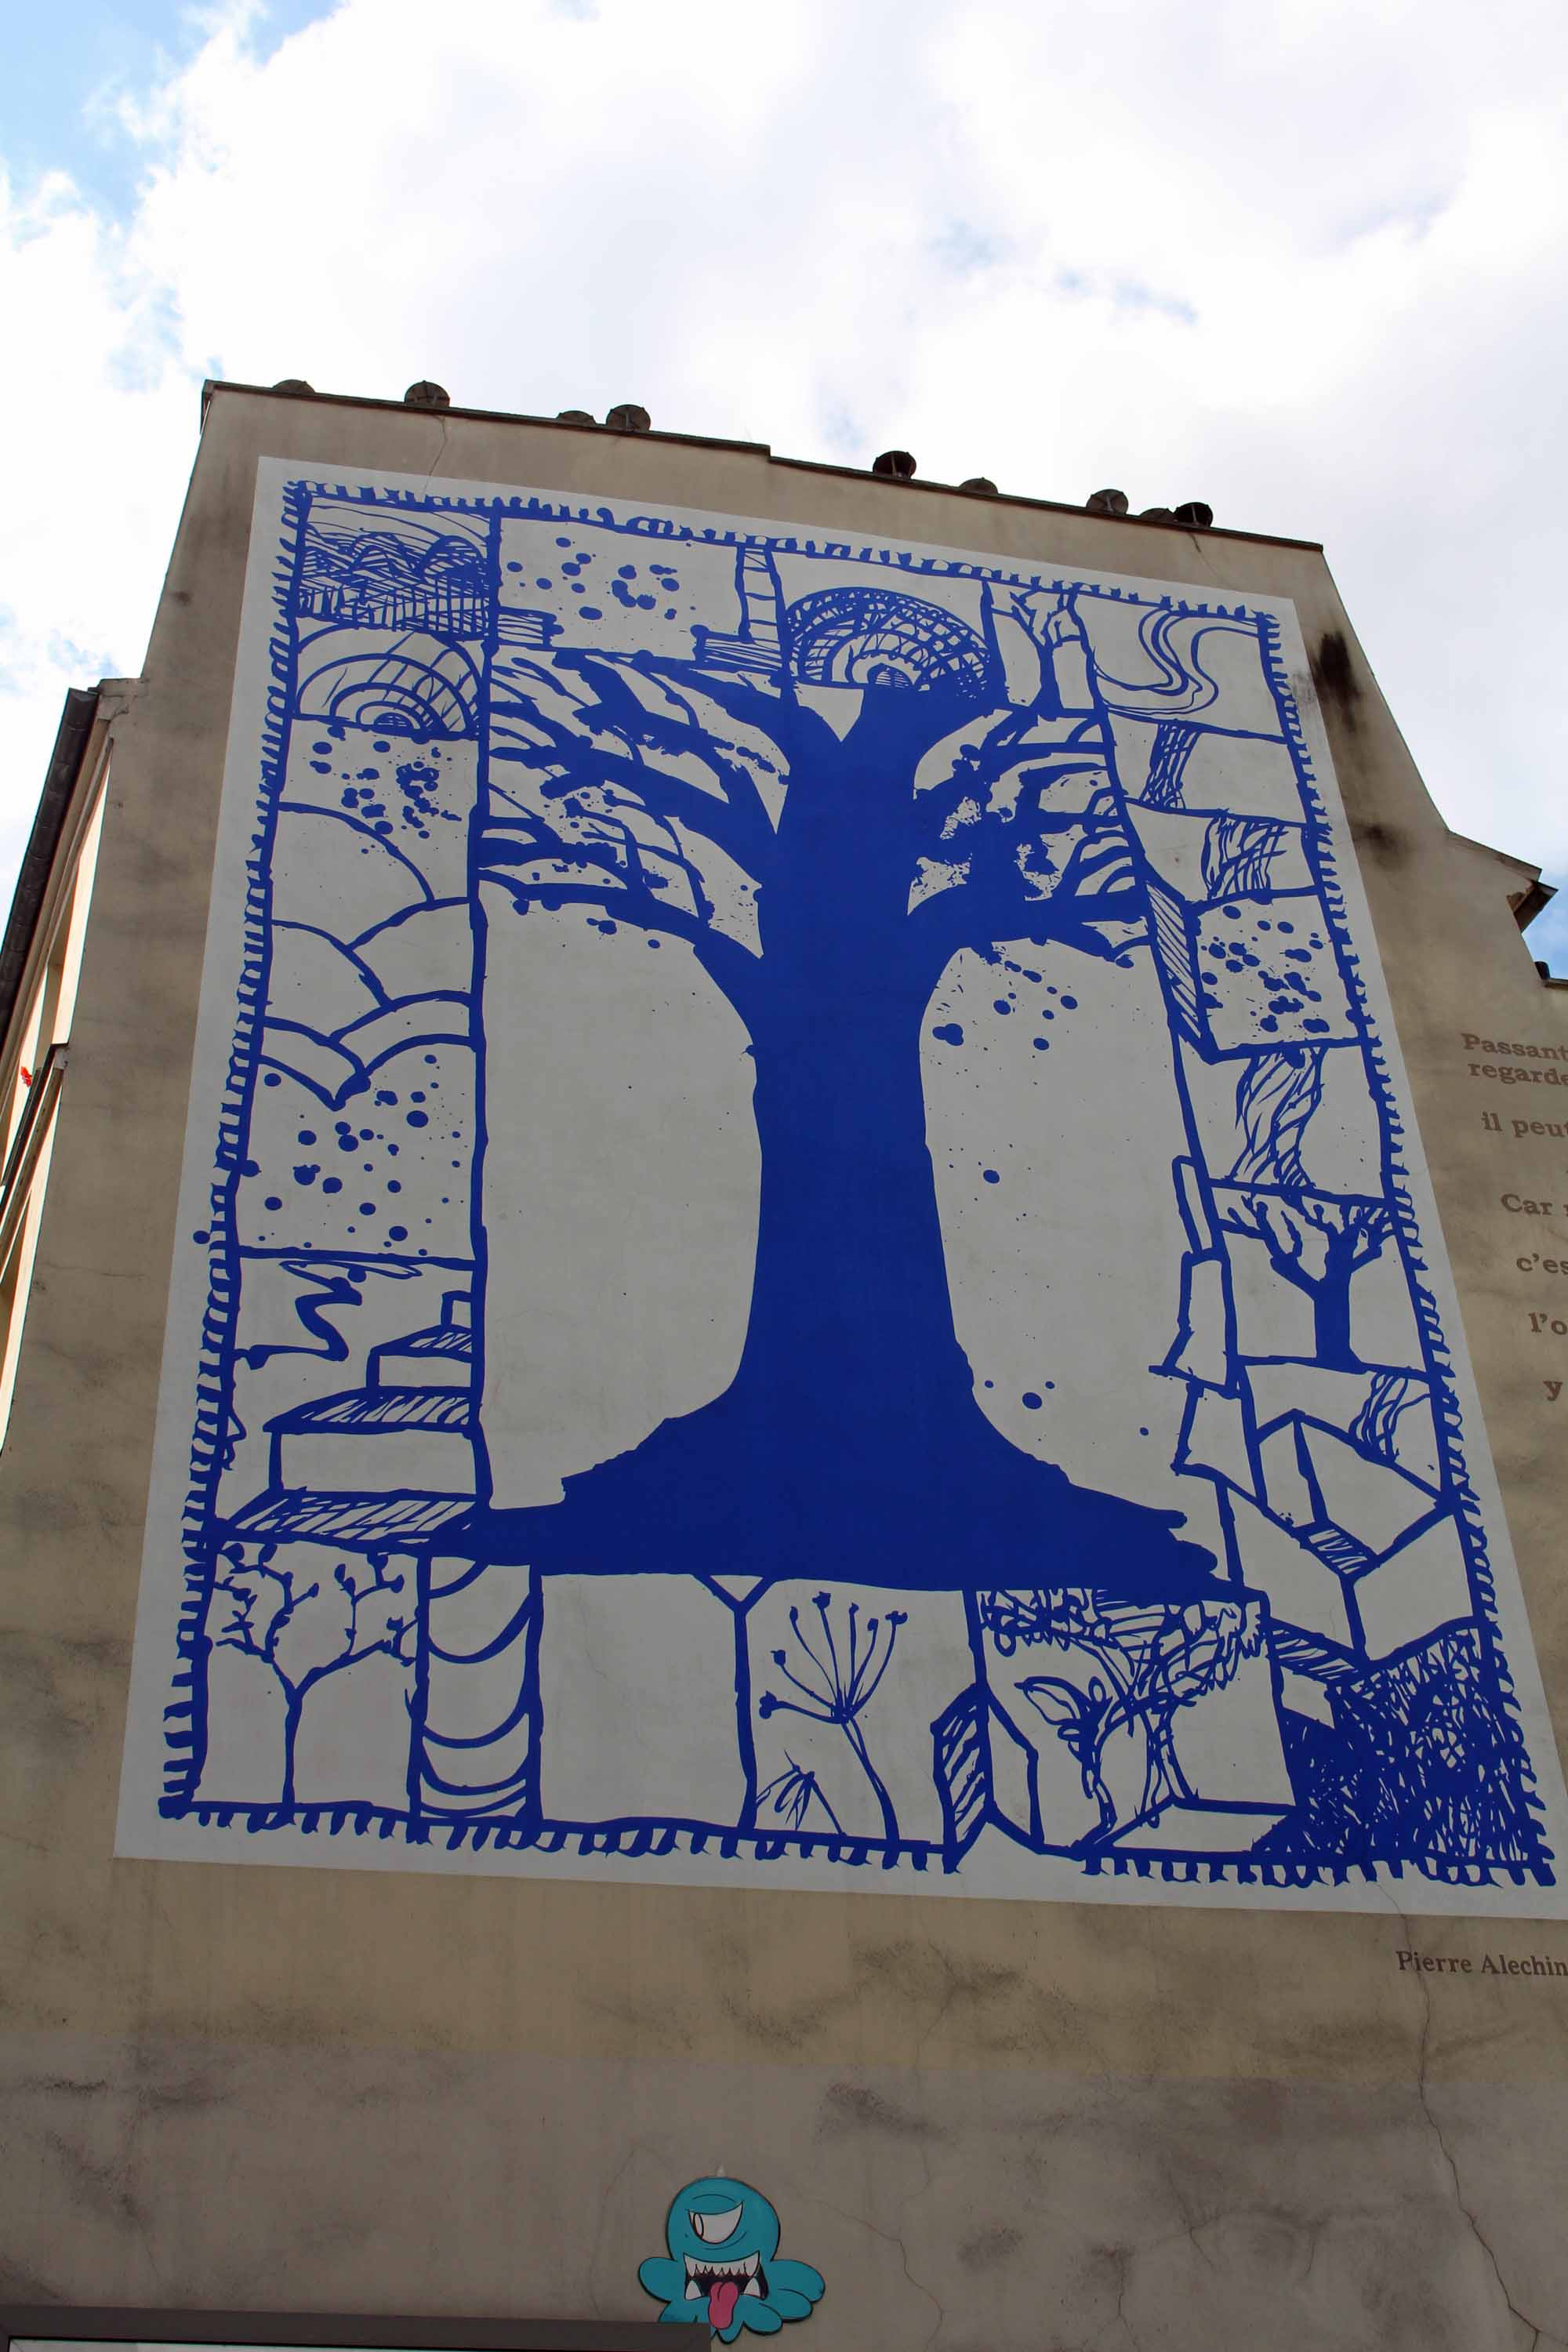 Paris, Alechinsky, blue tree